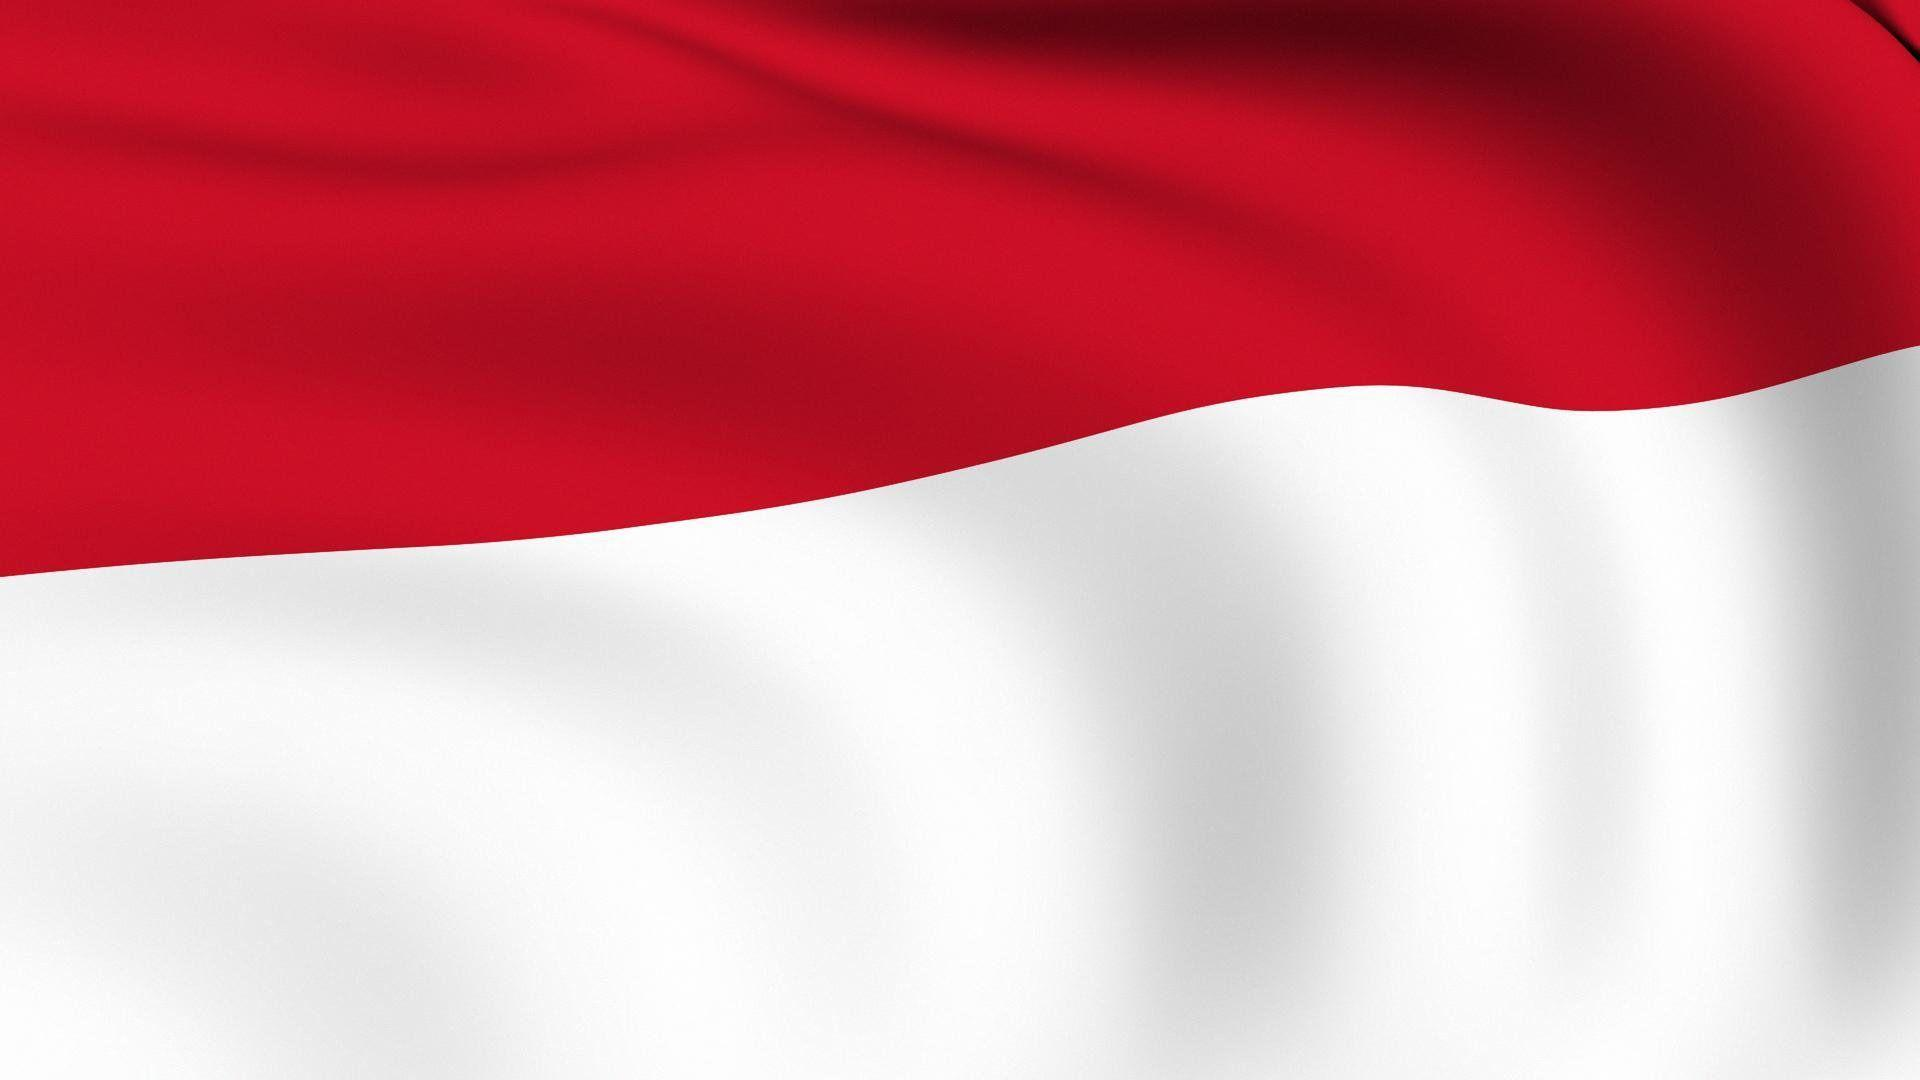 Indonesia Flag Wallpapers For Android Apk Download